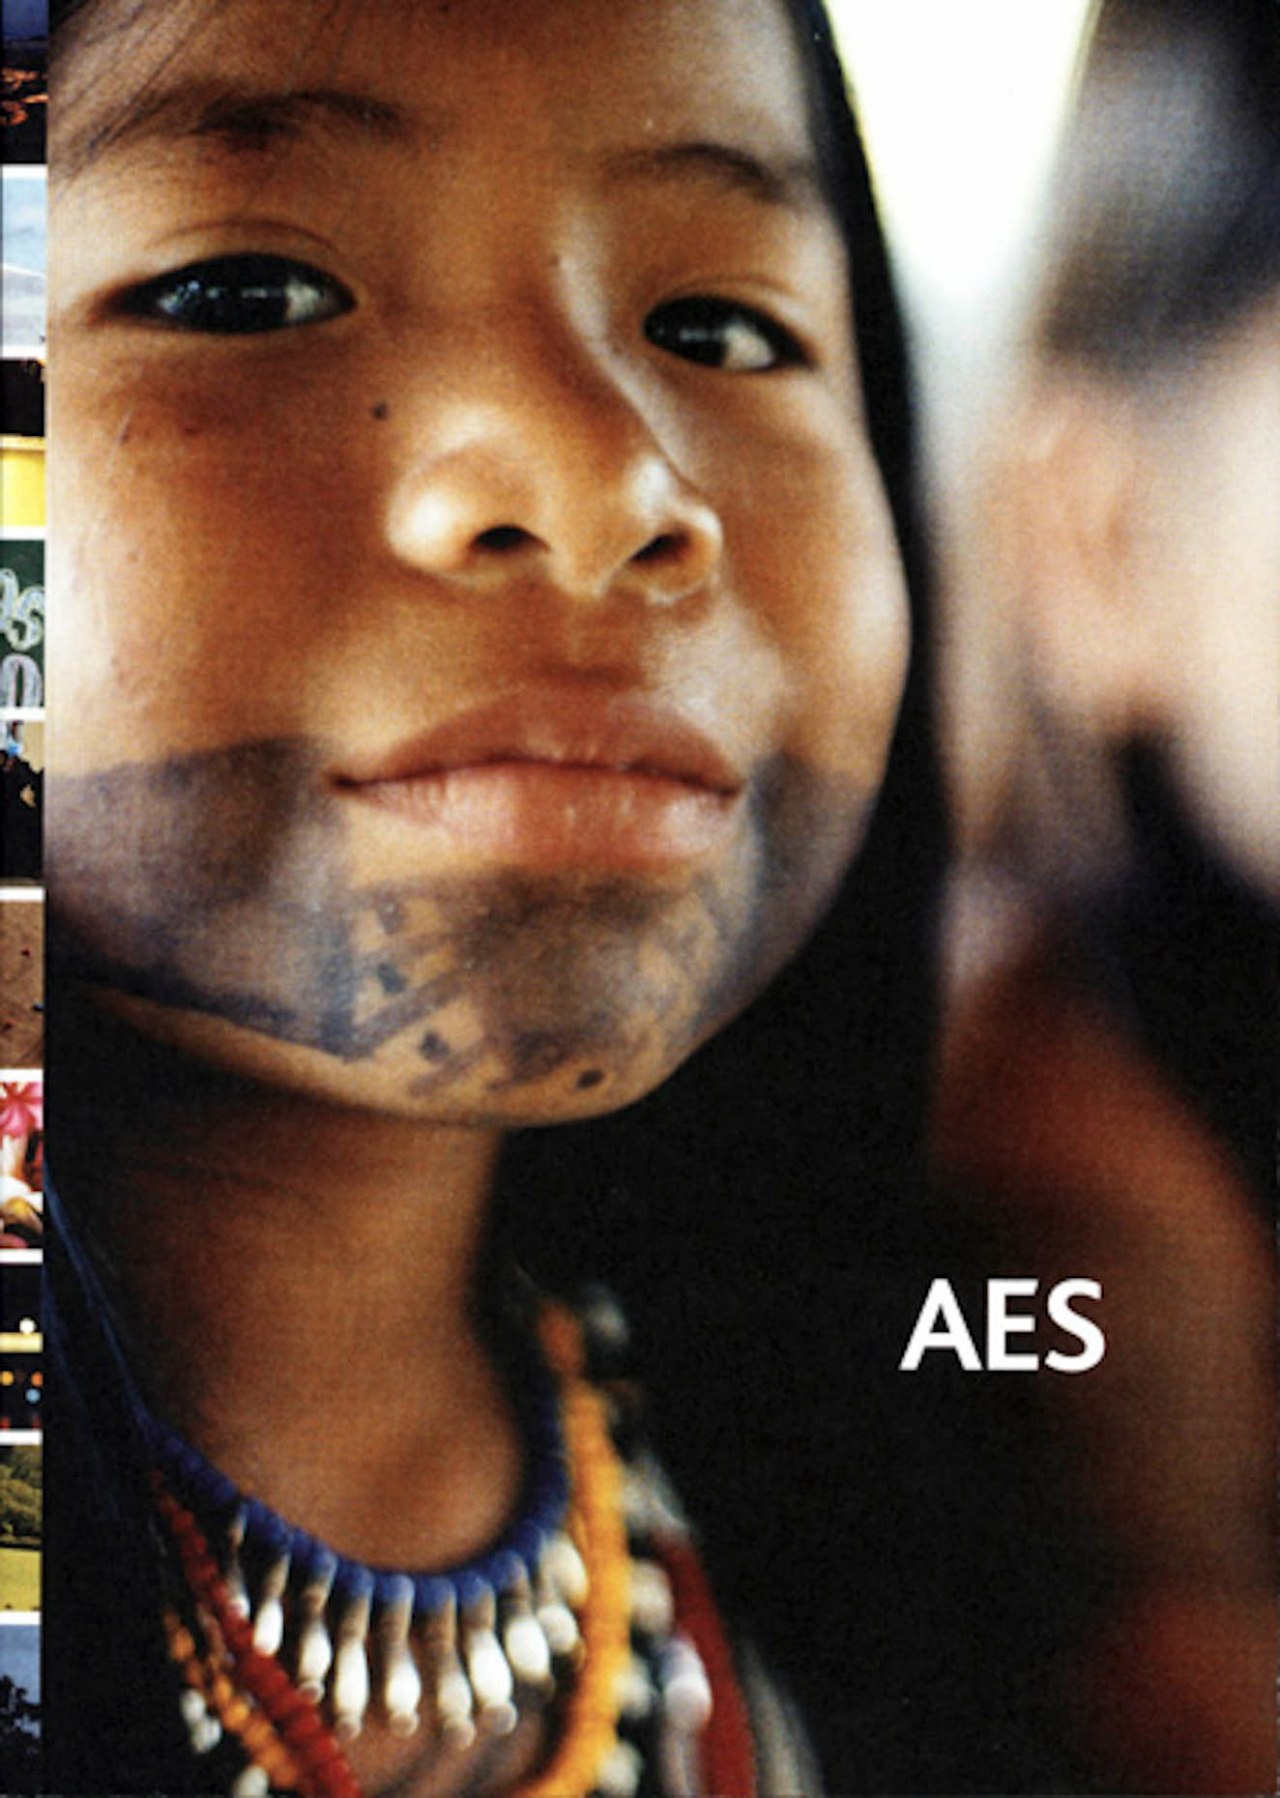 AES: The Power of Being Global – Watch the Video Here